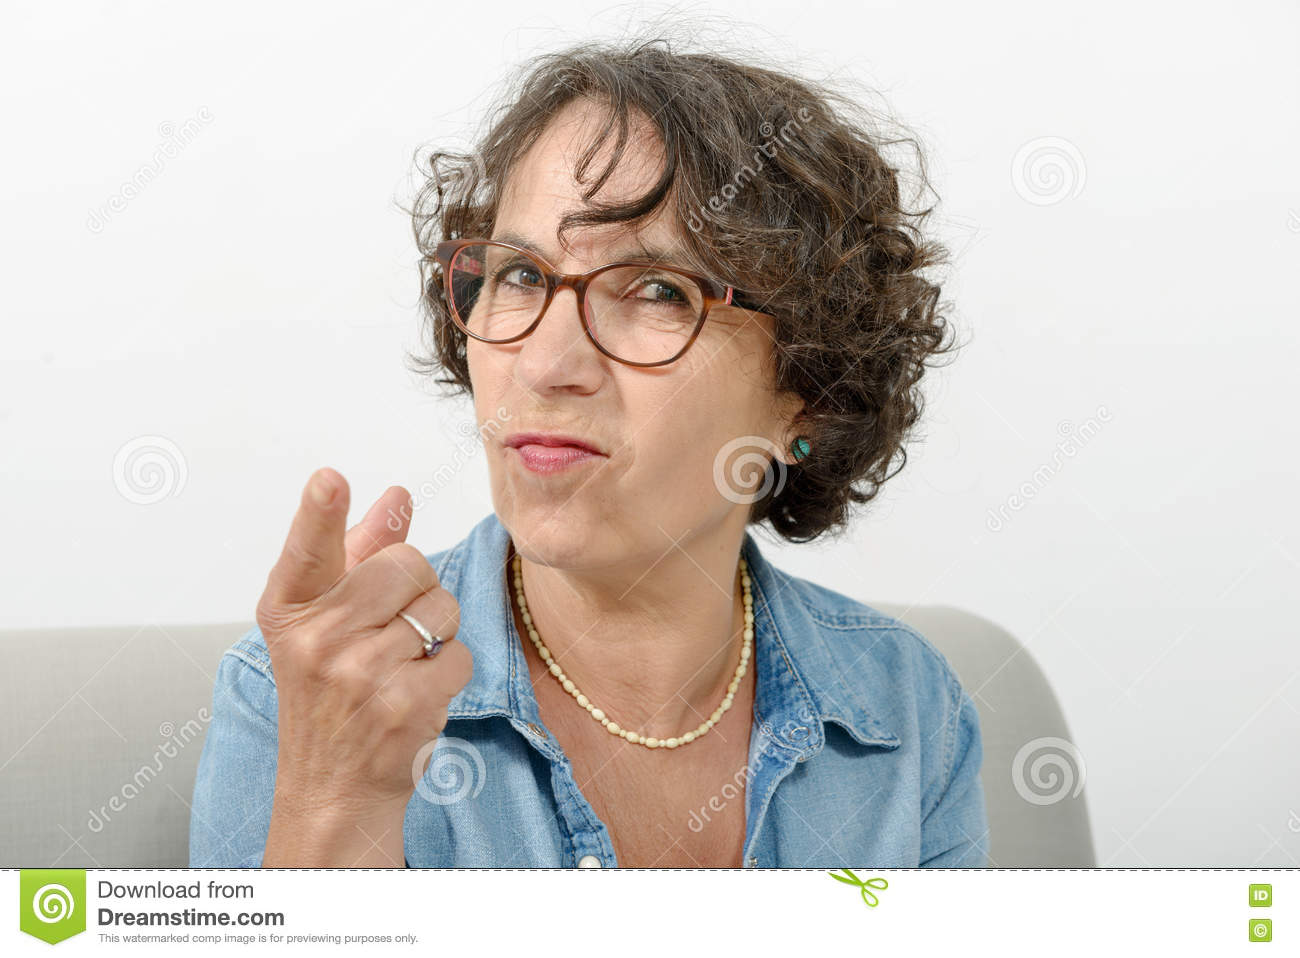 Portrait of a middle-aged woman angry